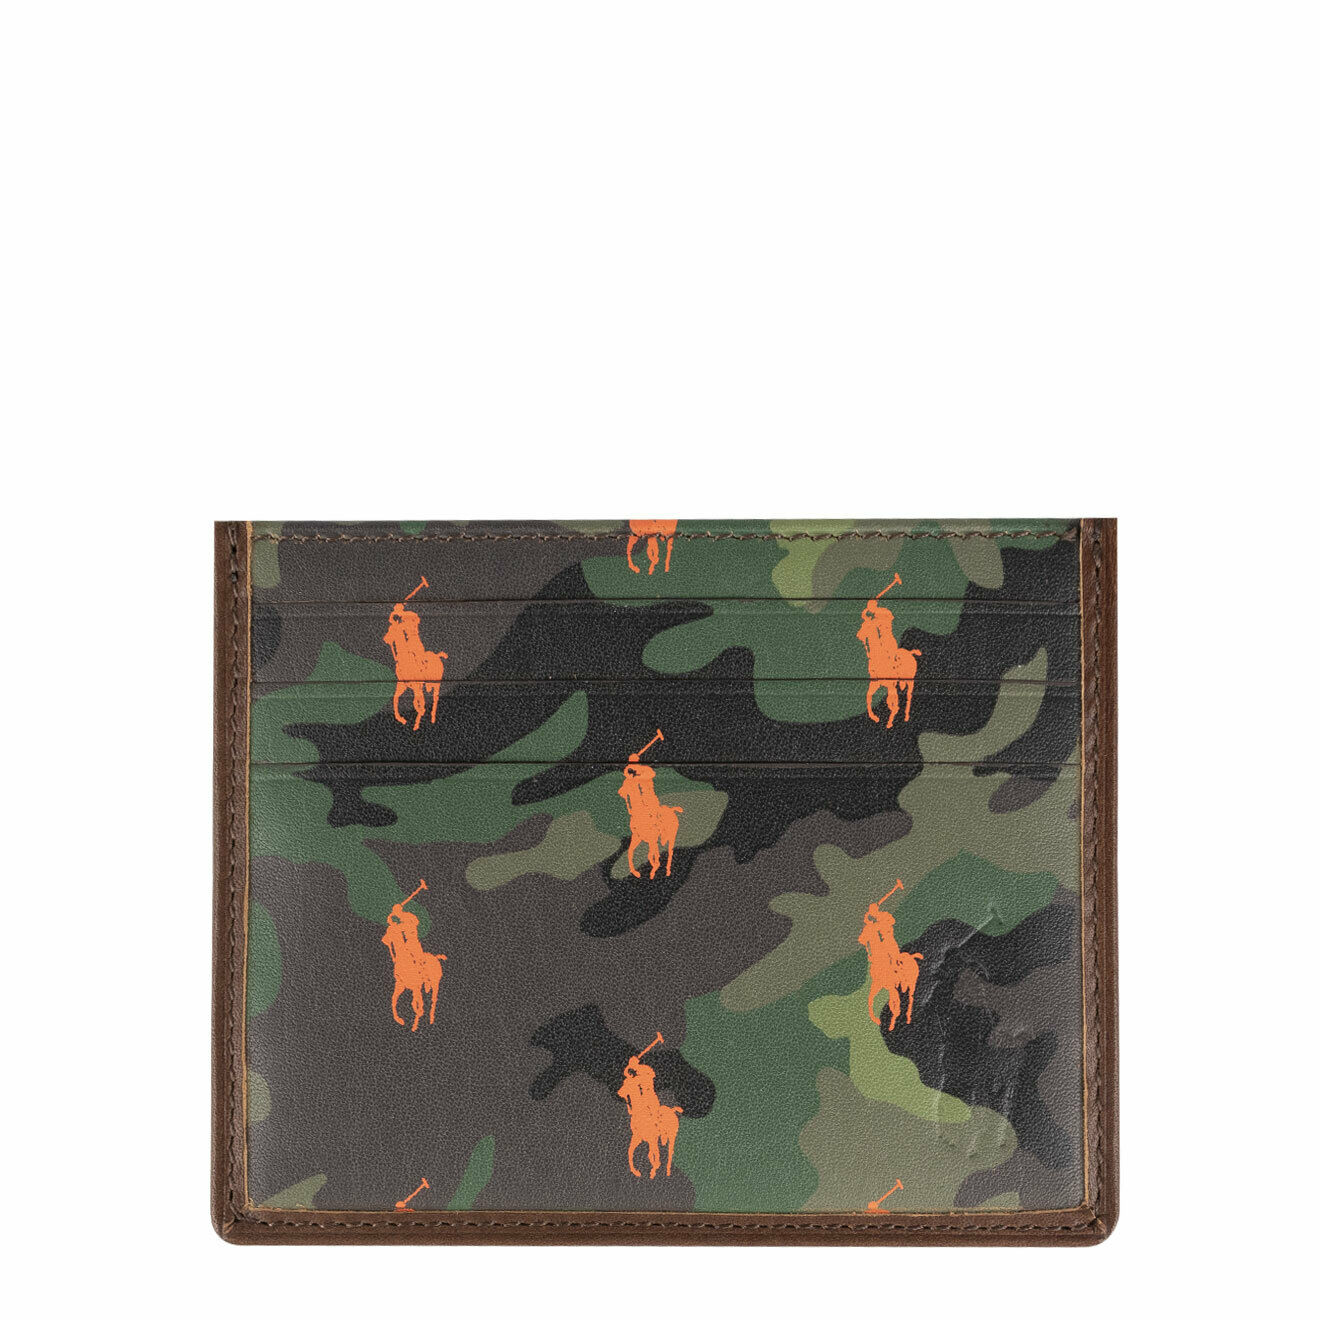 Polo Ralph Lauren Small Leather PP Card Case Camo / Brown - SALE!!